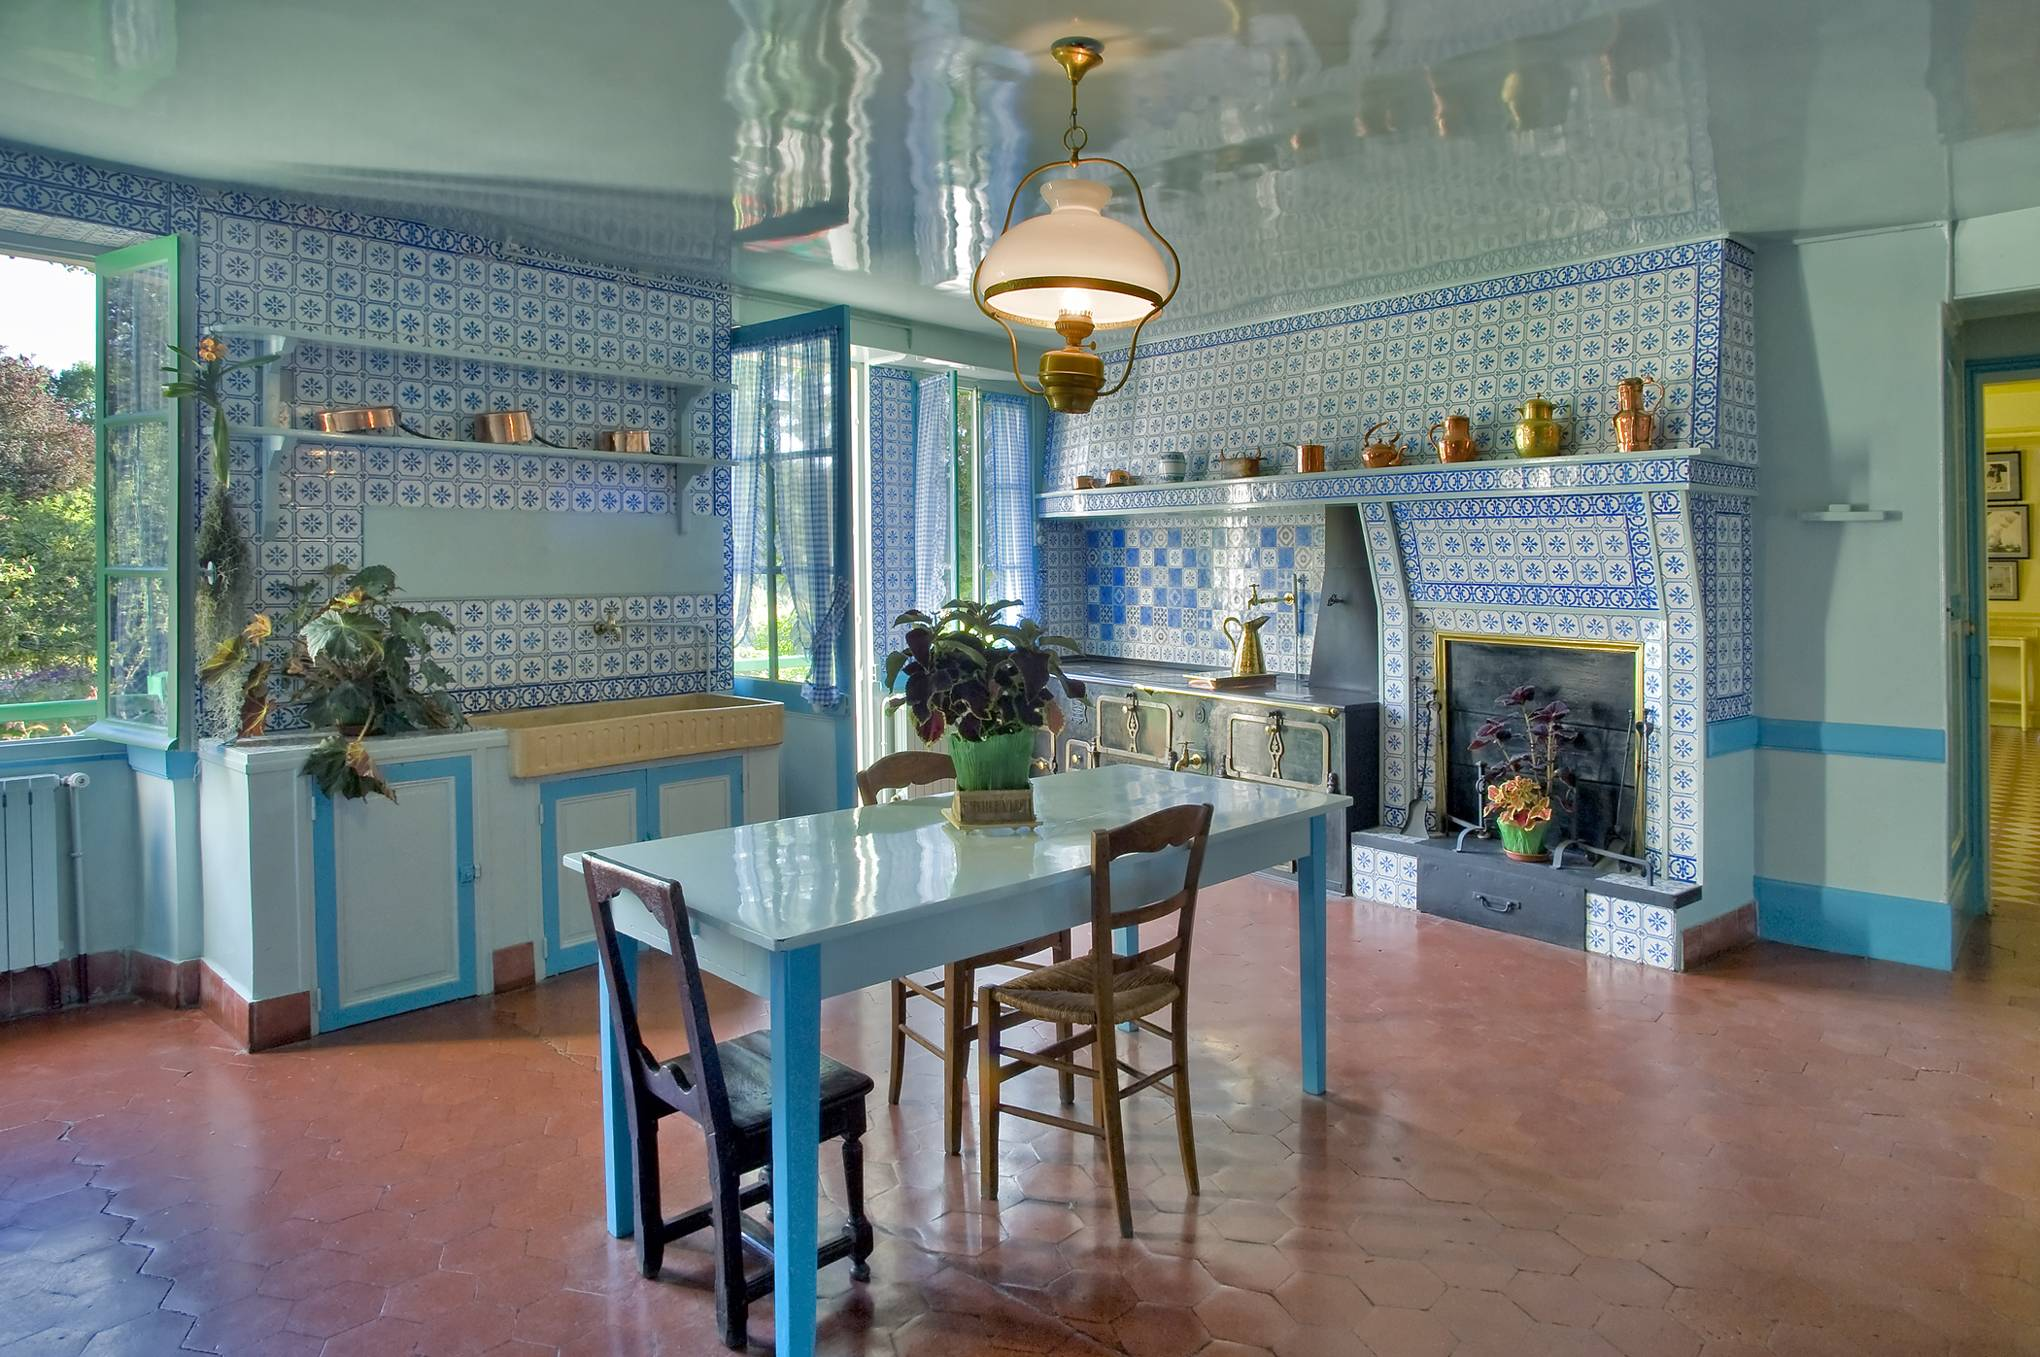 Forget the gardens: the best part of Monet's Giverny home is the kitchen